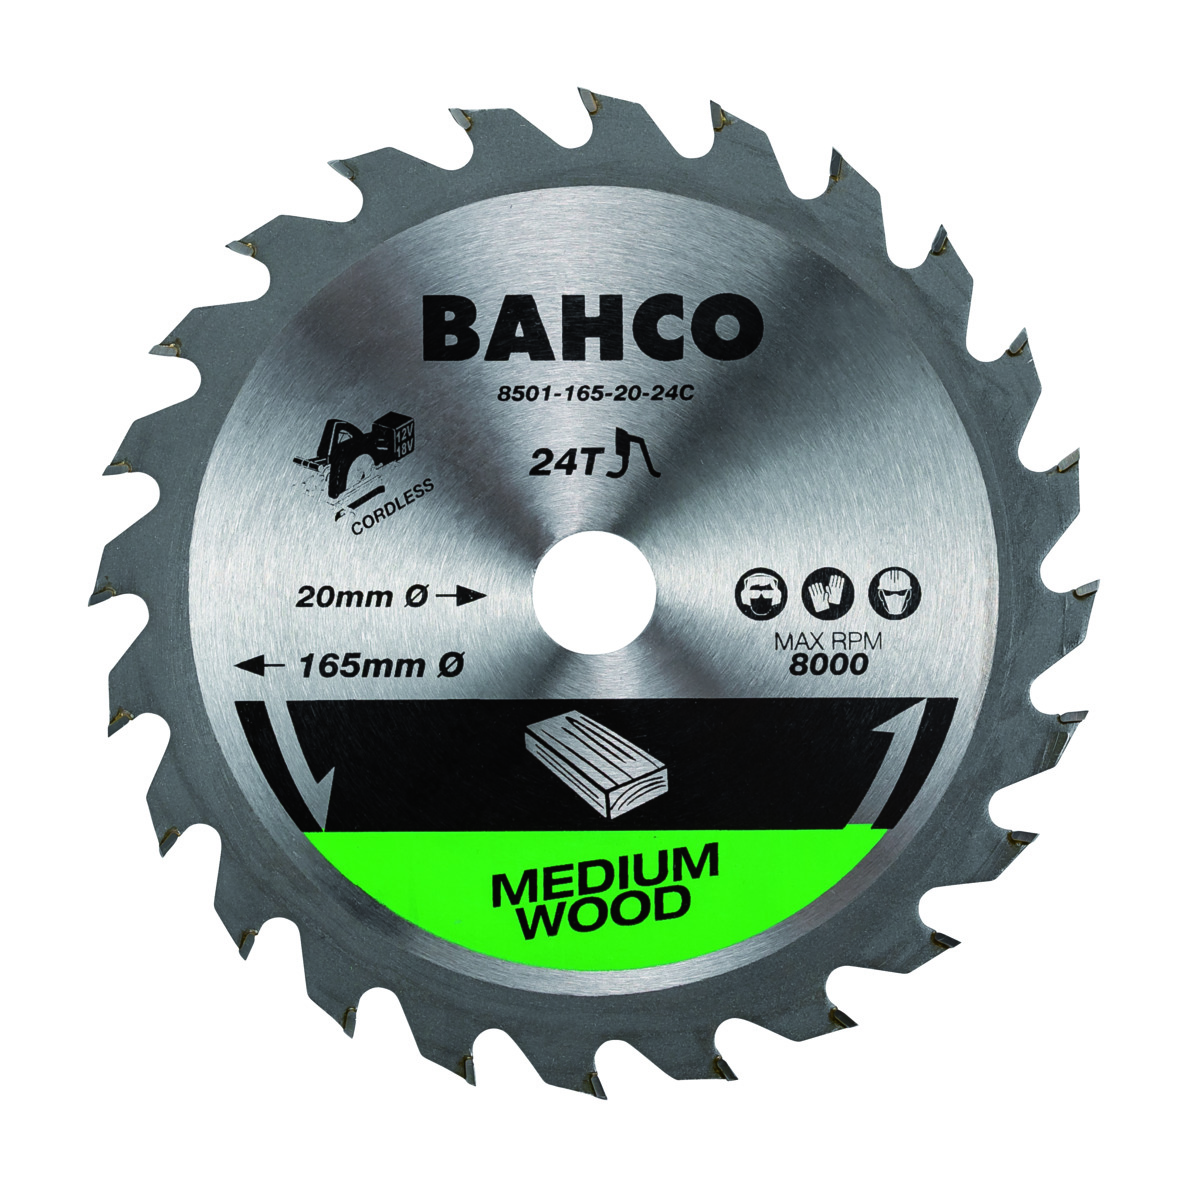 Circular saw blade for cordless saw machines 136x16/20mm 24T for wood